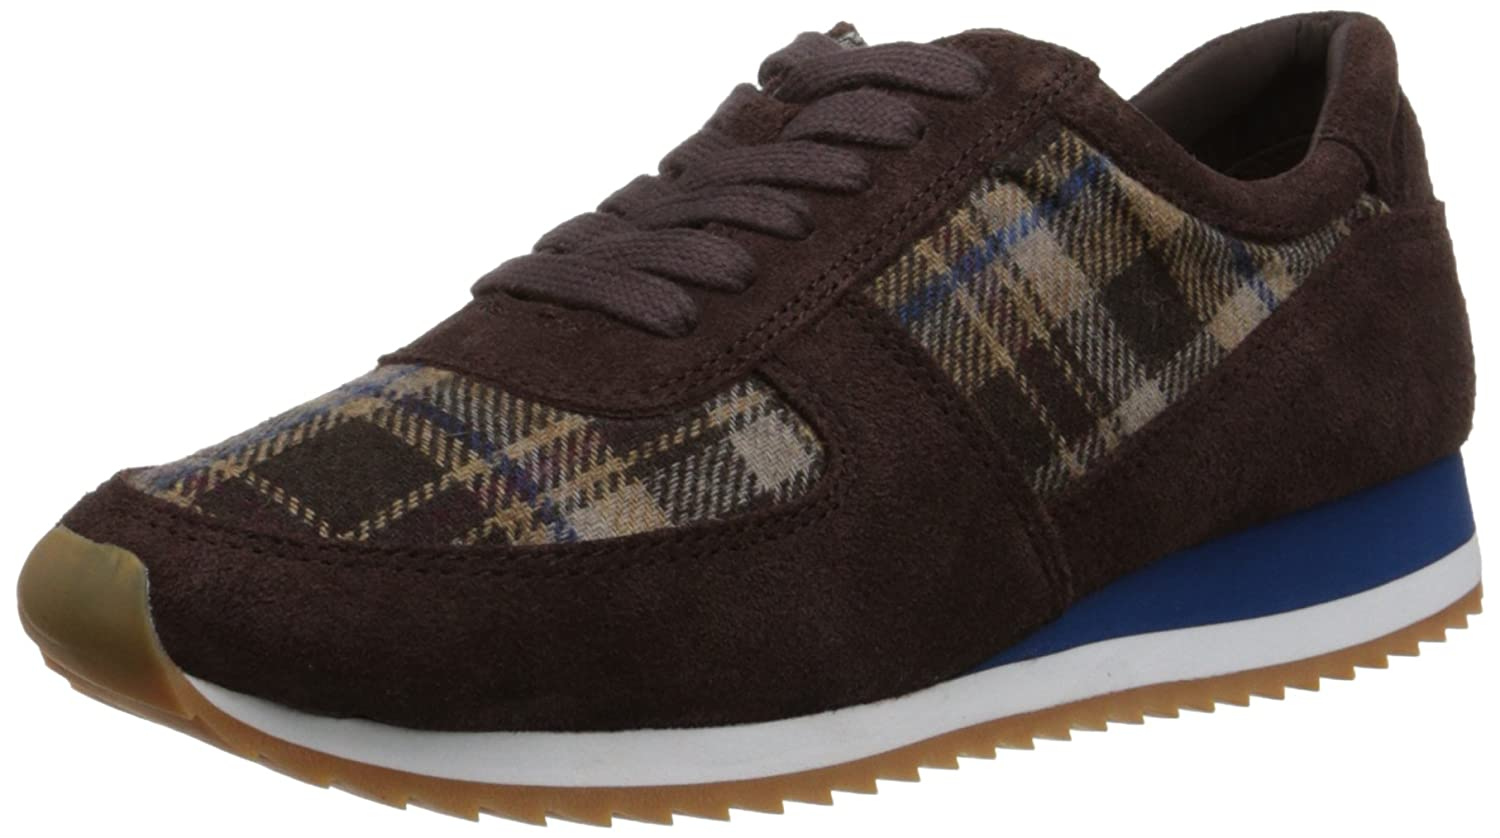 Dark marron Suede Plaid Flannel Bella Vita Wohommes Emilie Fashion baskets 8 2A(N) US